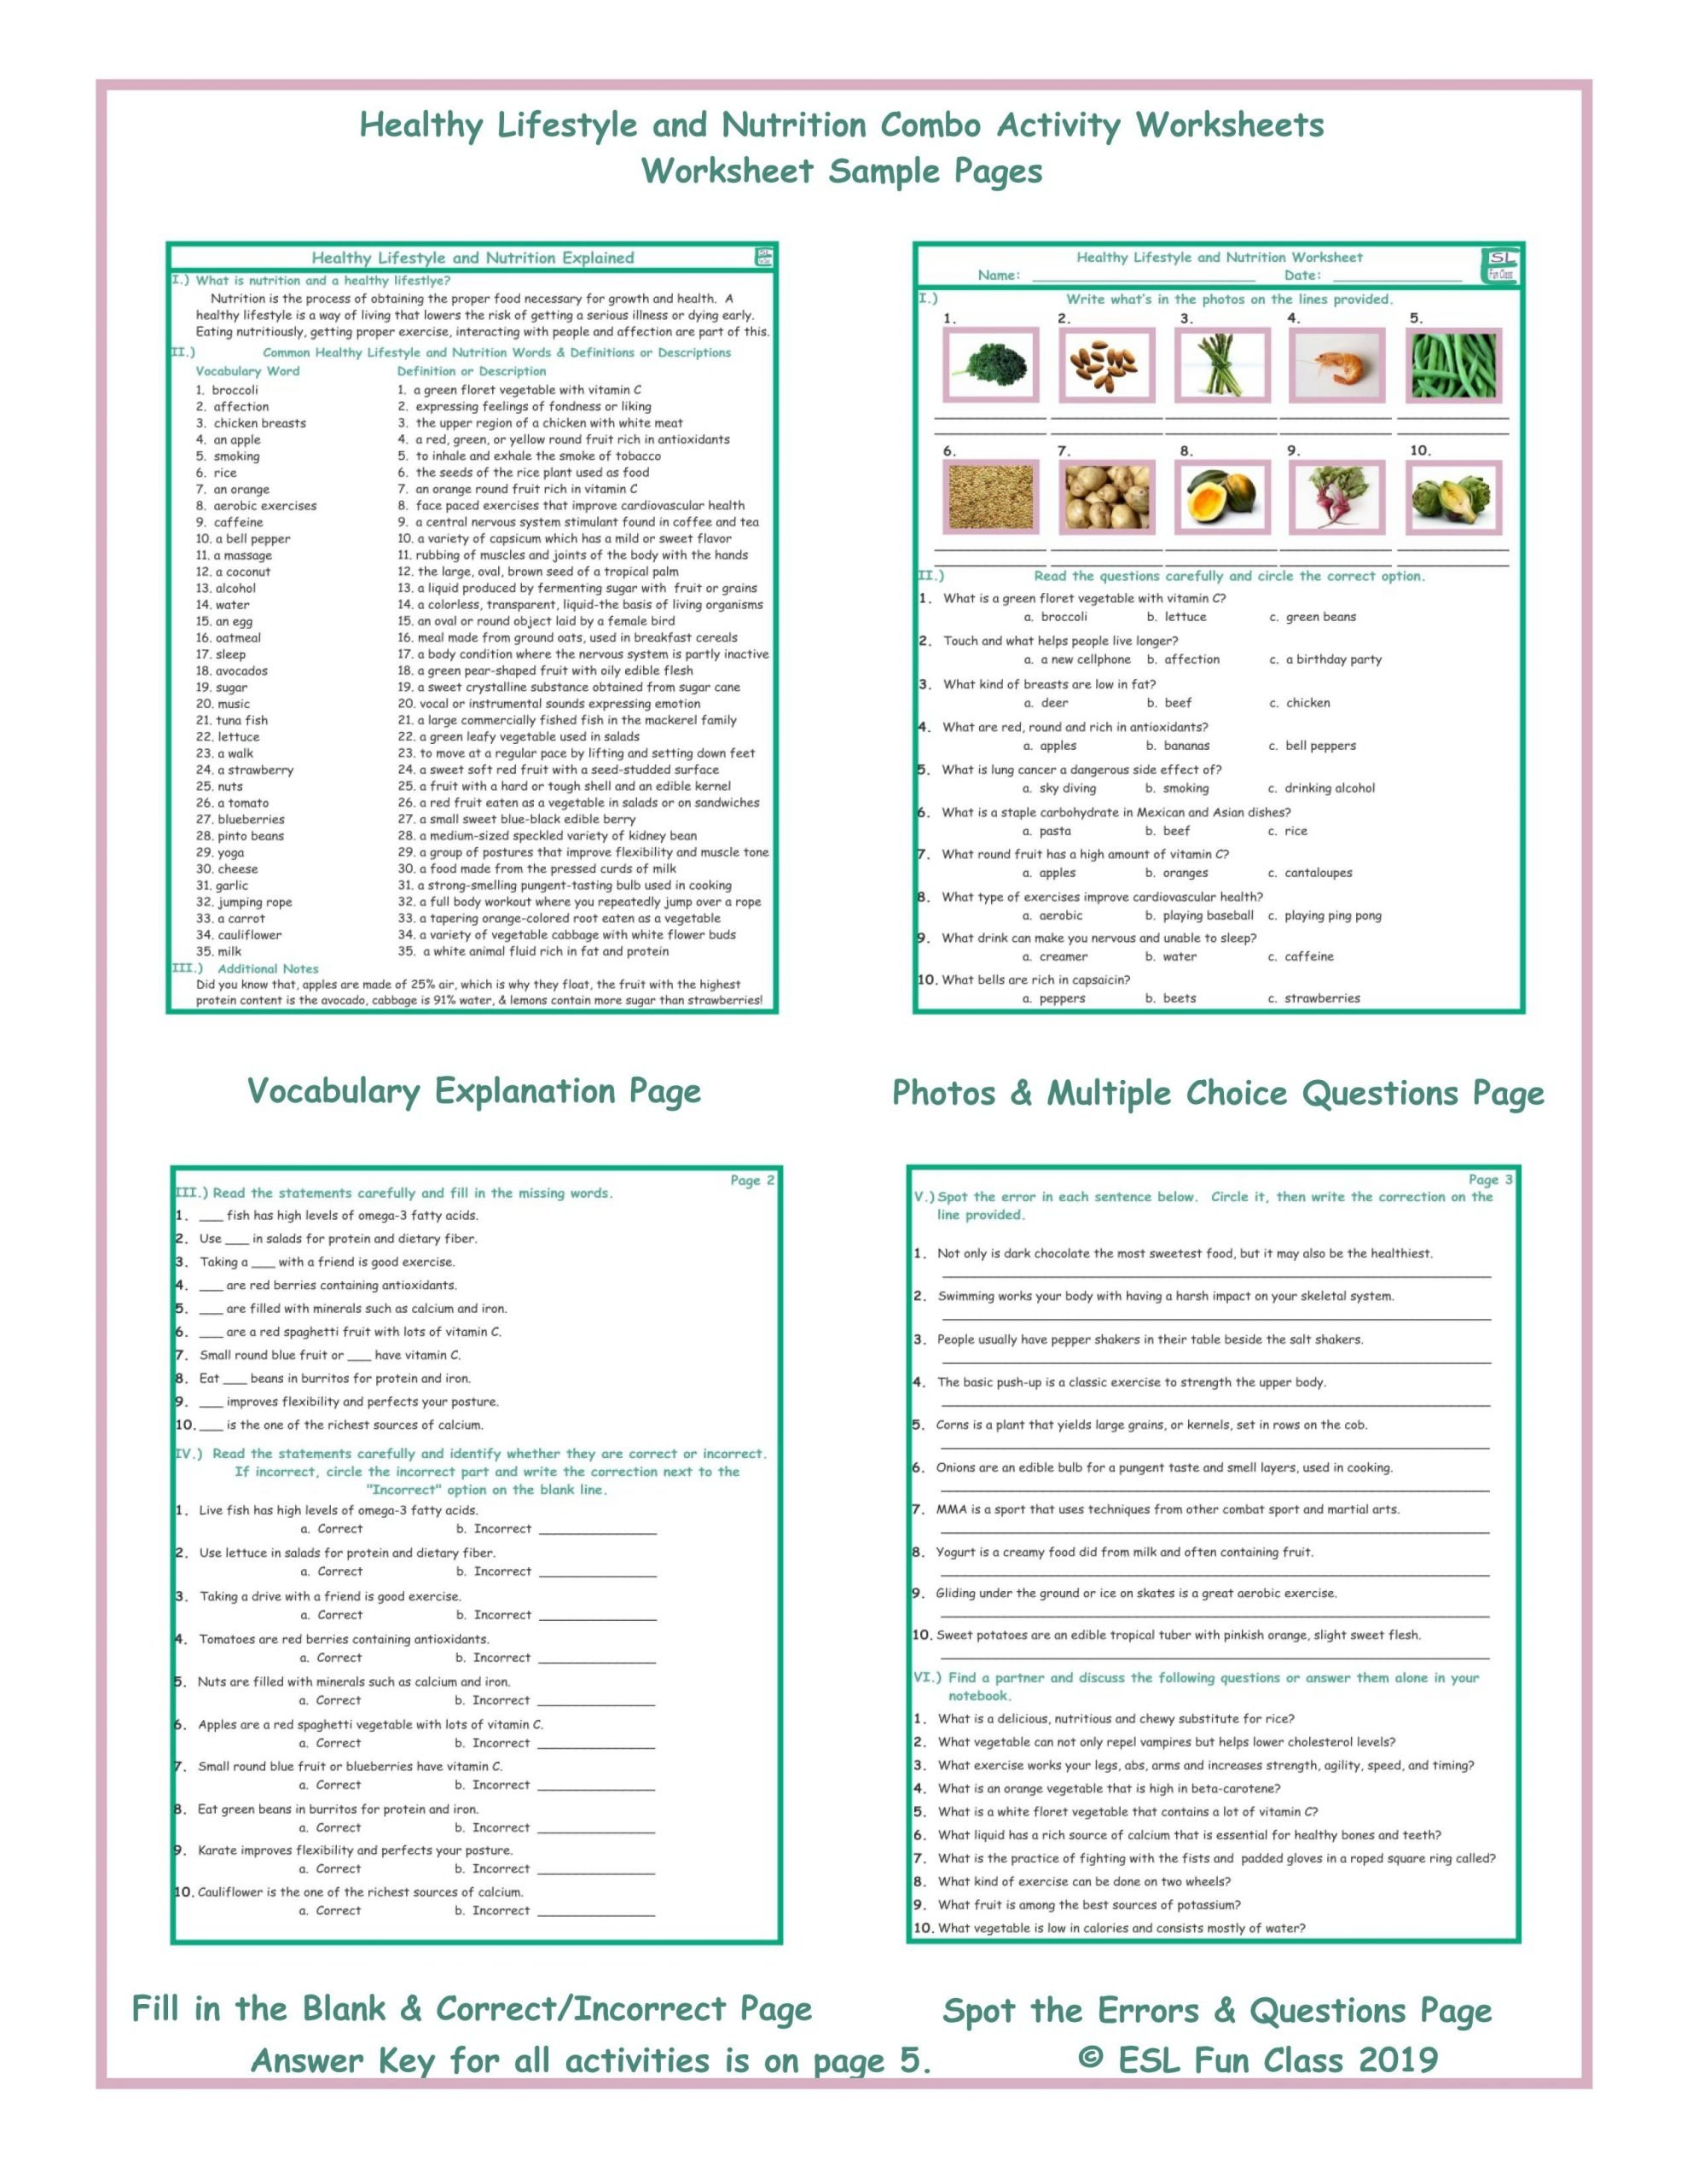 Middle School Health Worksheets Pdf Healthy Lifestyle and Nutrition Bo Activity Worksheets